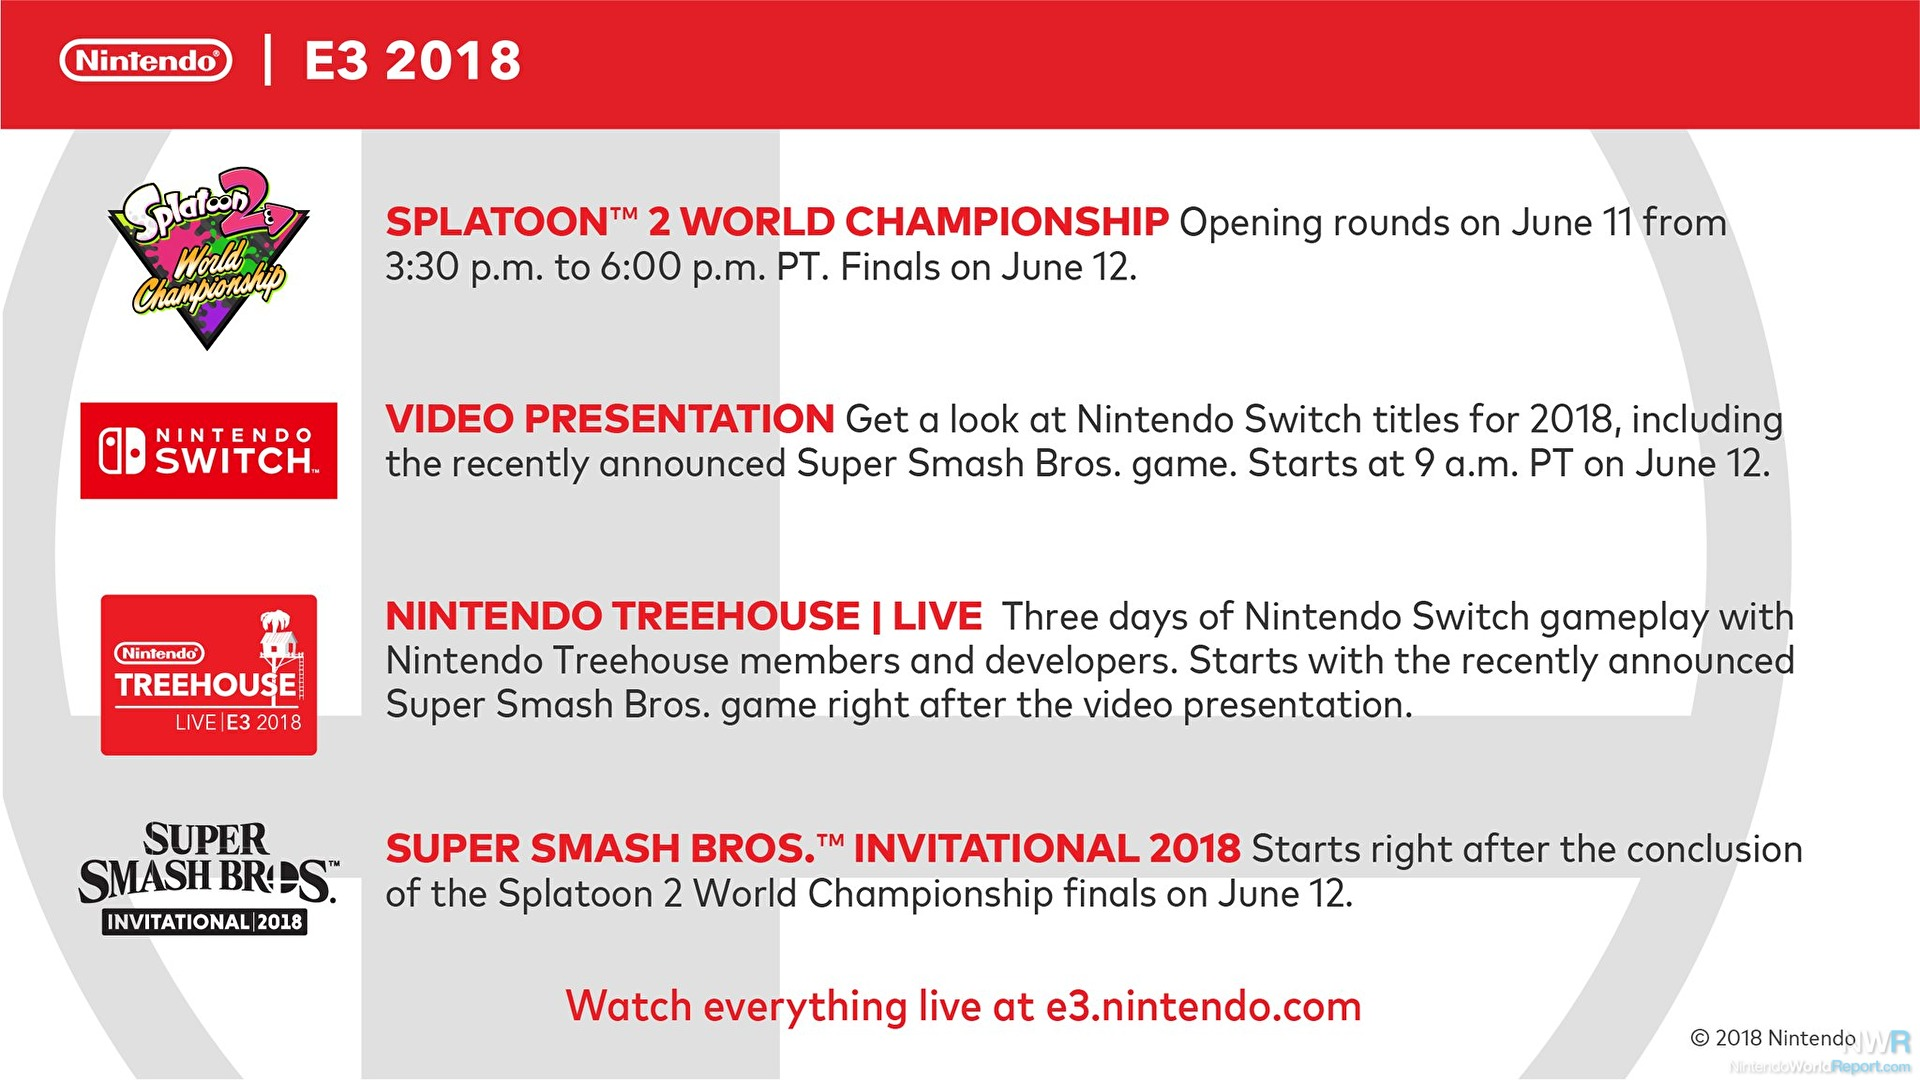 Nintendo lays out E3 plans including Splatoon 2 and Smash tourneys